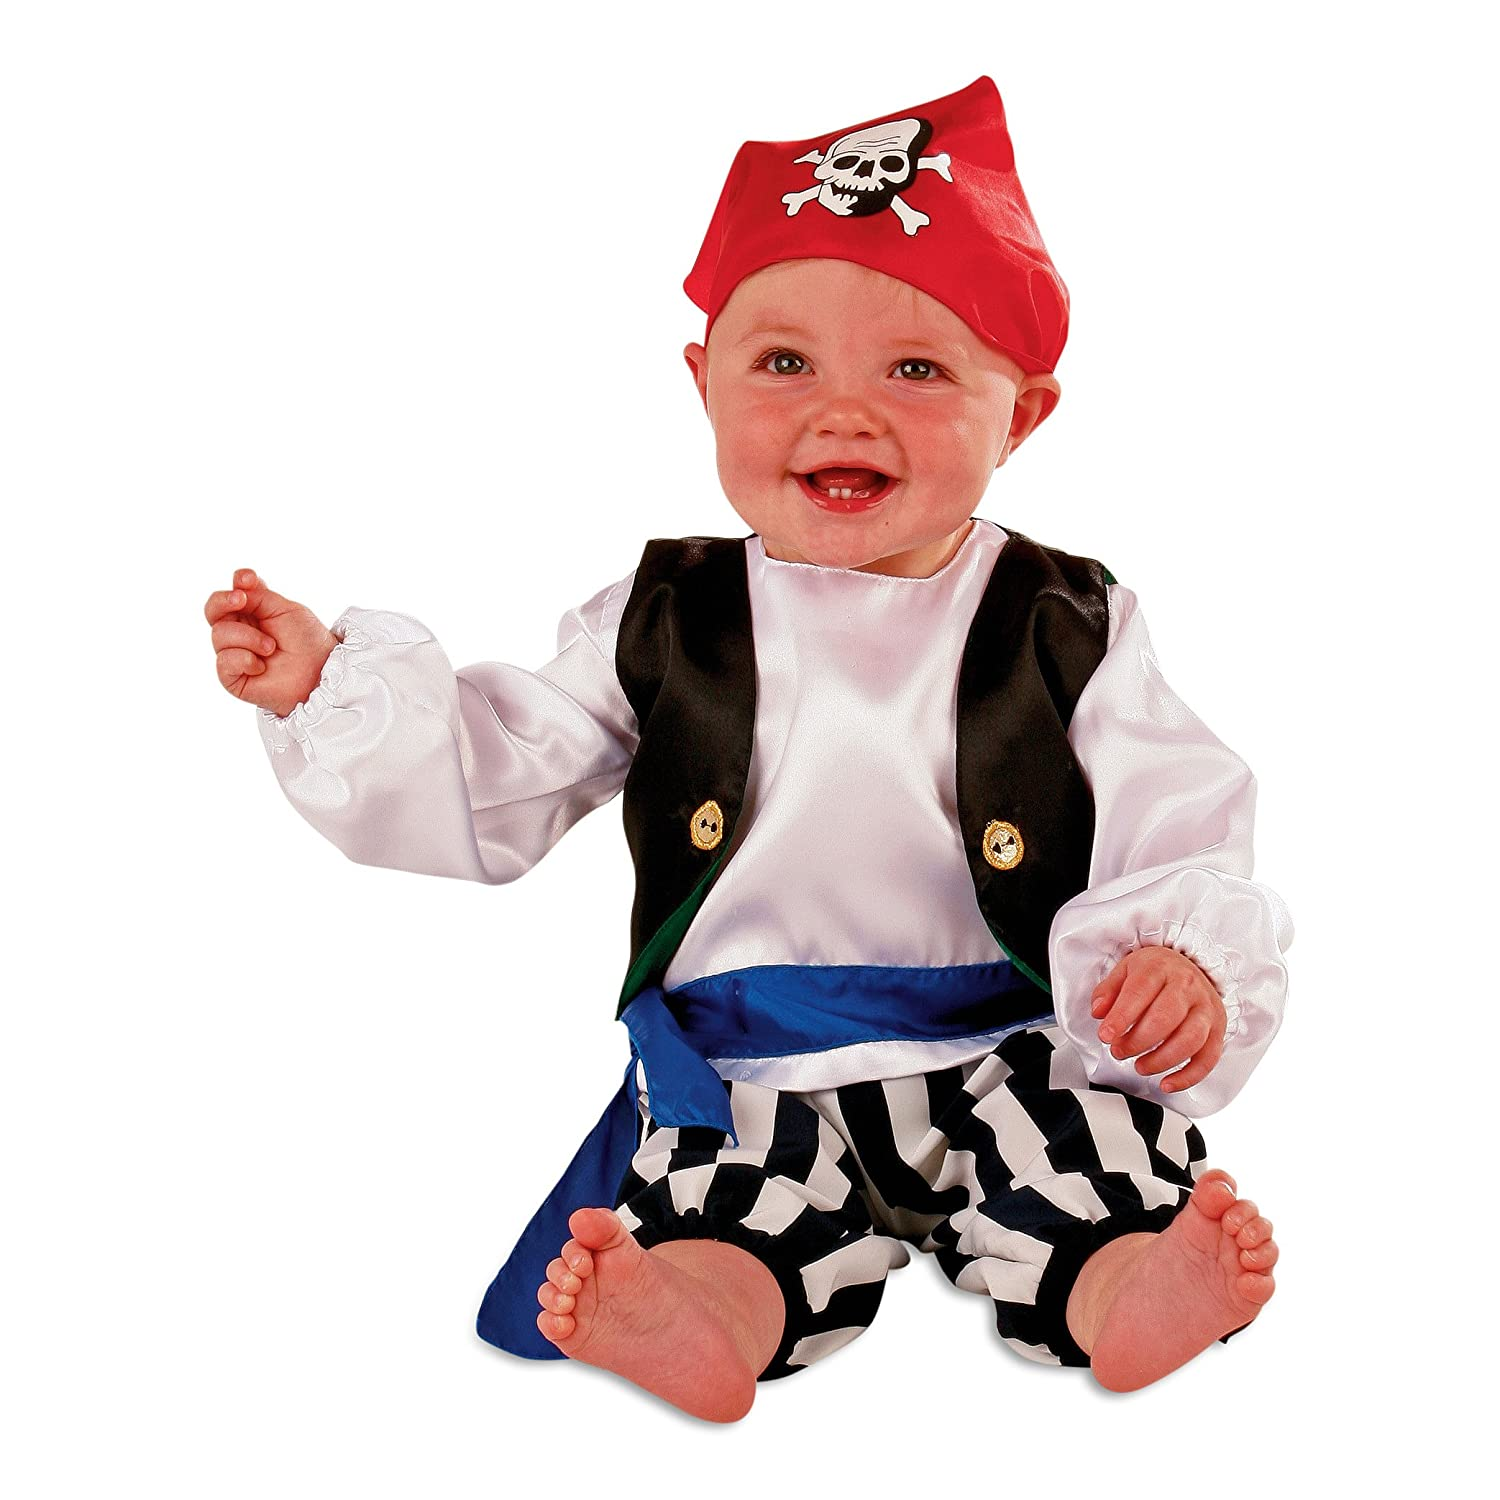 Baby Toddler Boy PIRATE FANCY DRESS COSTUME Slimy Toad 0 6